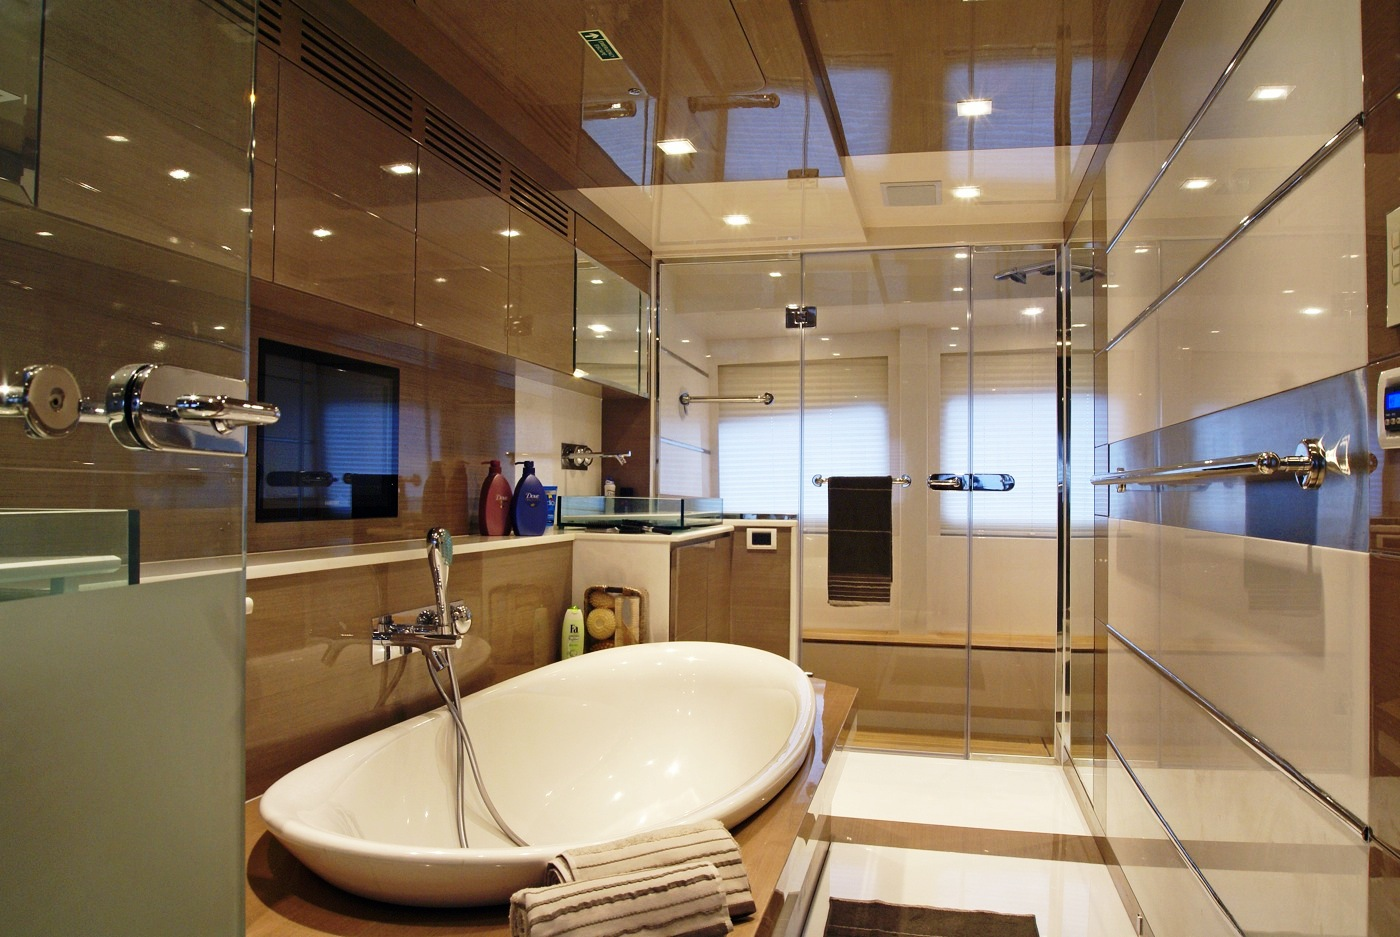 Motor yacht noor master bathroom yacht charter superyacht news Small yacht bathroom design